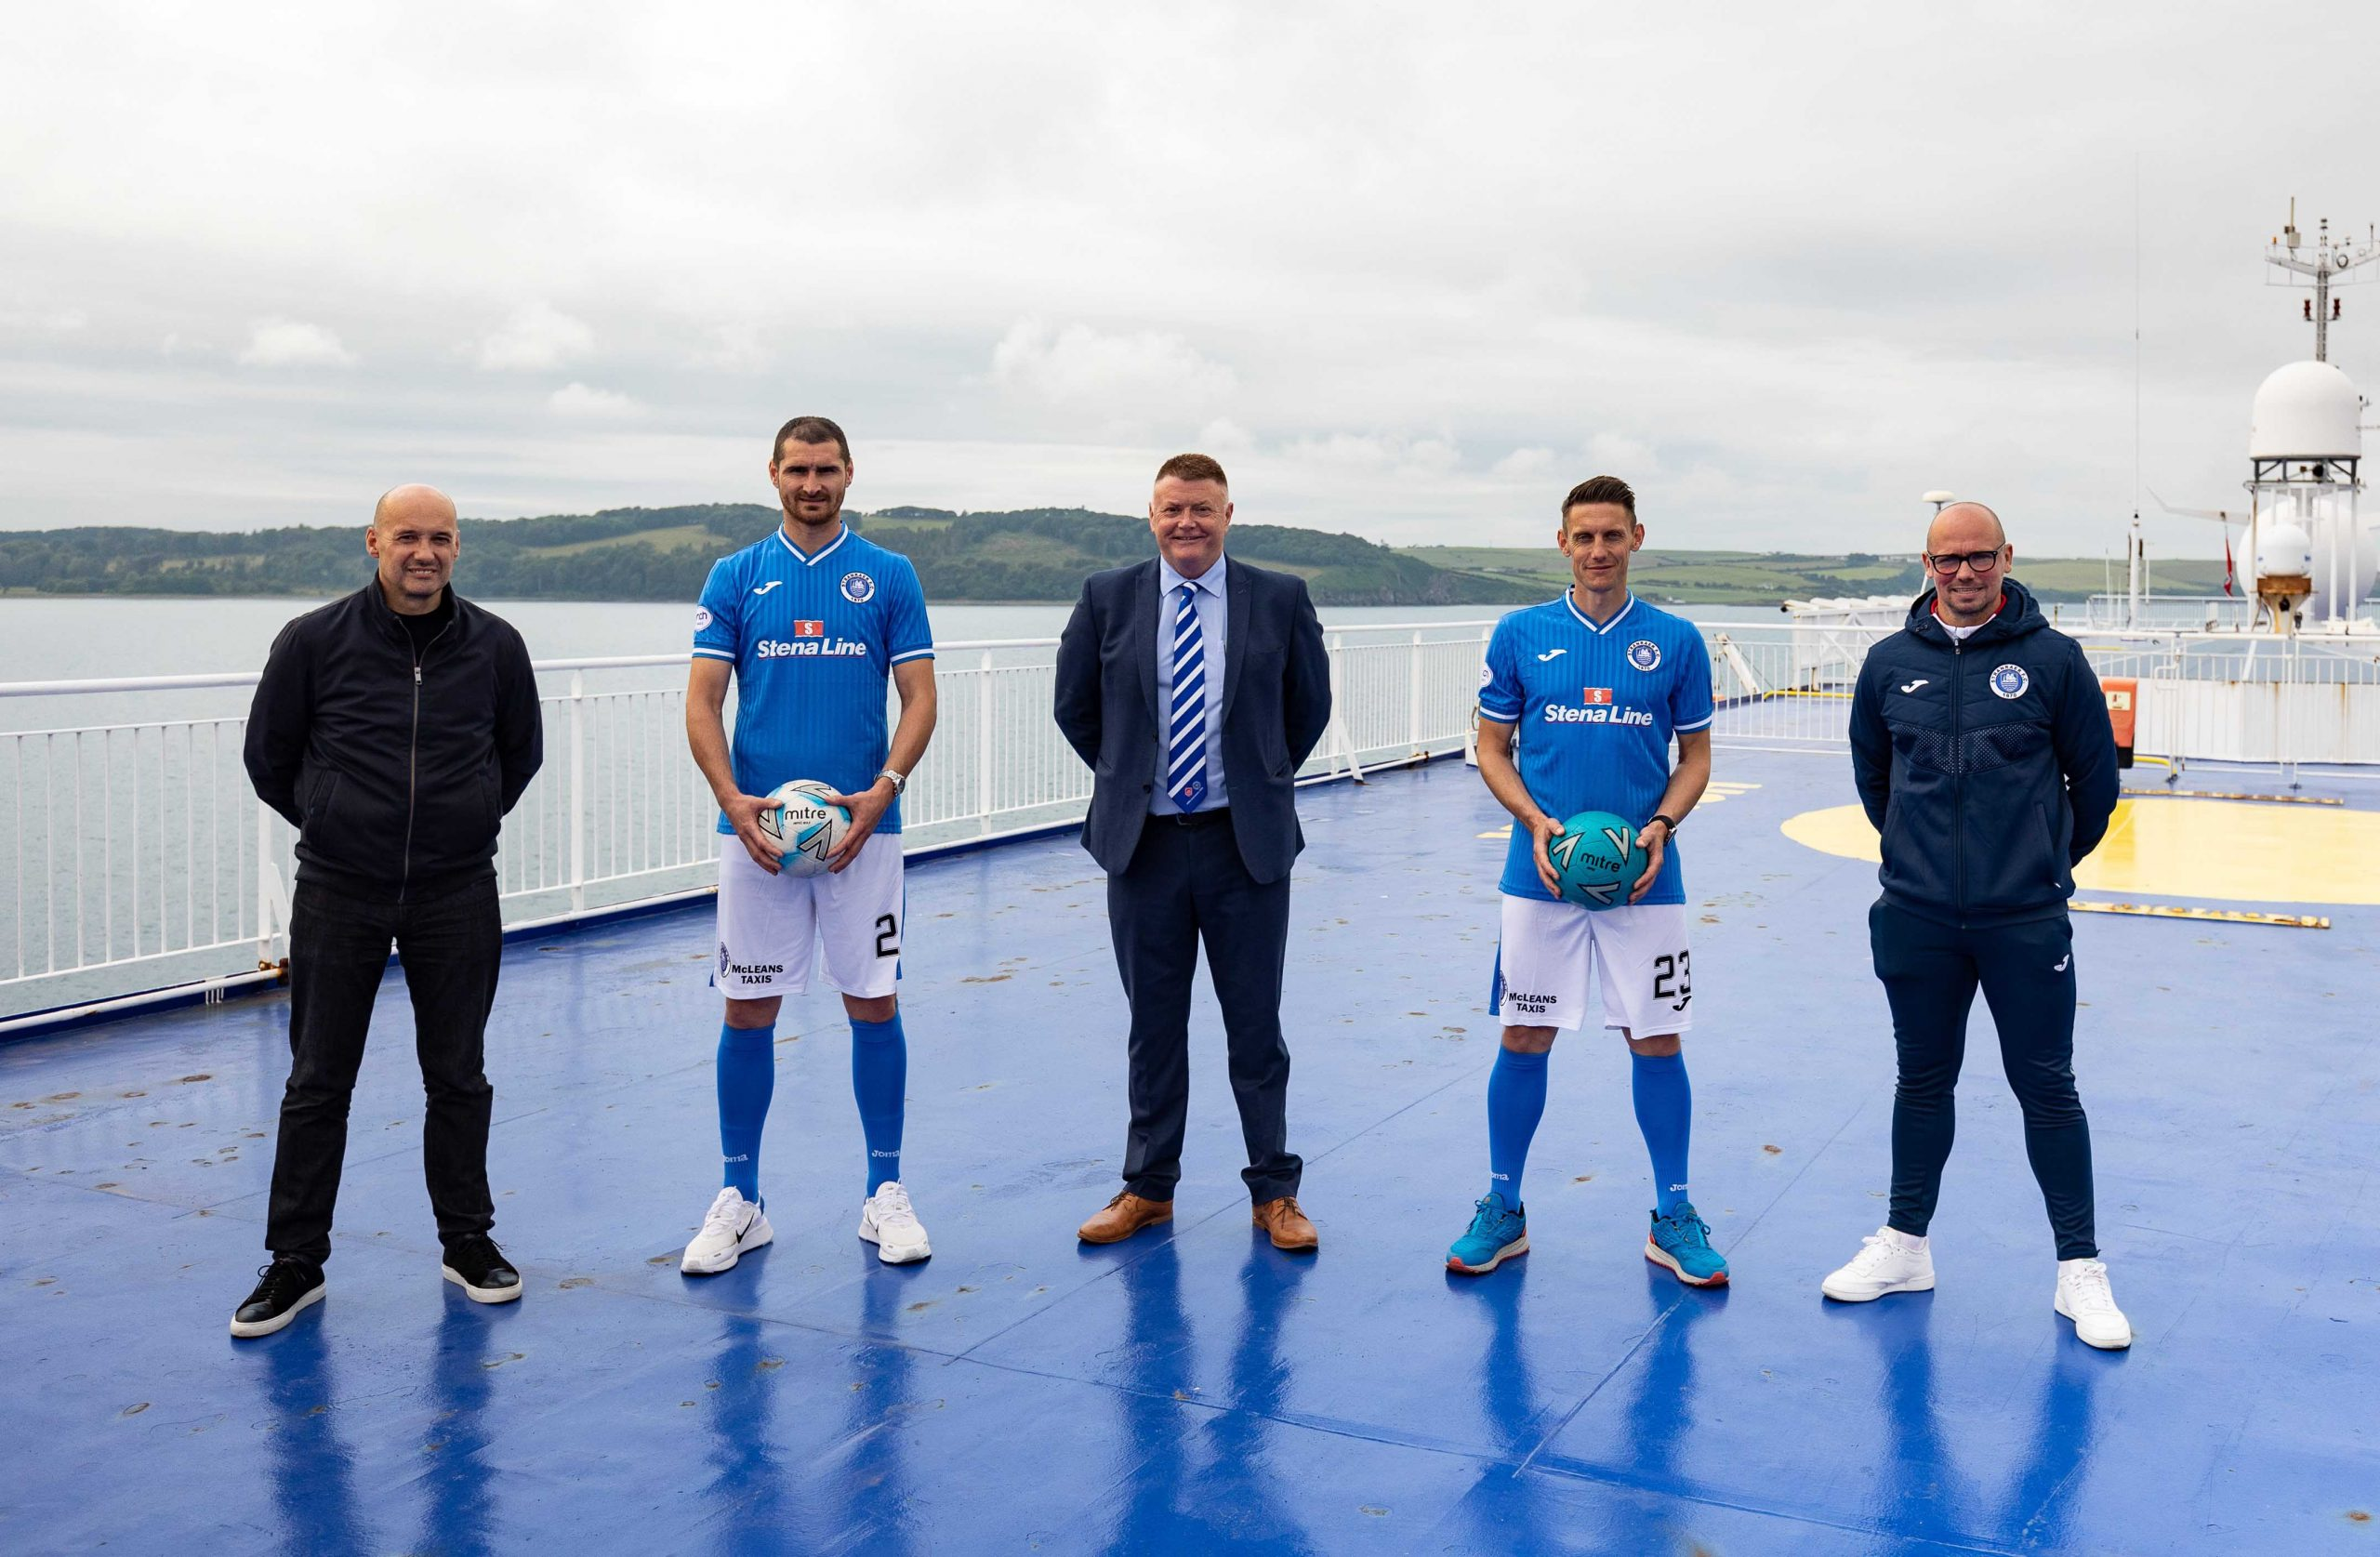 FERRY GOOD DEAL: The longest unbroken sponsorship deal in British professional football history is to continue for a staggering 34th consecutive season after ferry company Stena Line renewed its partnership with Scottish League Two side Stranraer Football Club. Stena Line's long-running association with Stranraer FC 'kicked off' in 1988 and has lasted longer than any other sponsorship out of all the English, Scottish and Welsh professional football leagues. Celebrating the renewal of the sponsorship on top of the Superfast VII ferry are (left to right) Stena Line PR & Communications Manager Simon Palmer, first team player Darryl Duffy, Stranraer FC Vice Chairman Robert H Rice, player Scott Robertson and team manager Jamie Hamill.